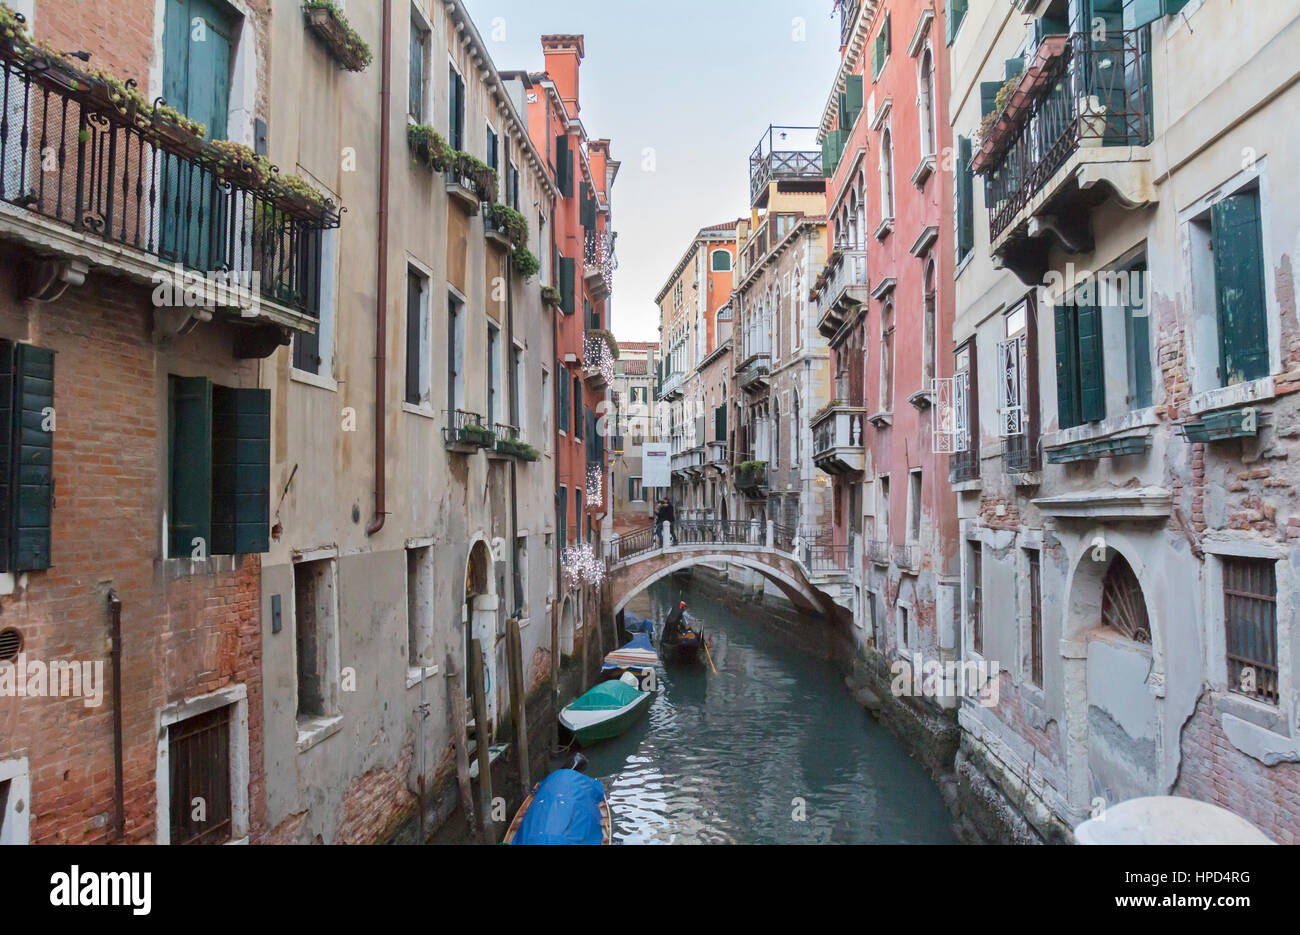 A view of gondolas and the Venice canals in Italy. - Stock Image